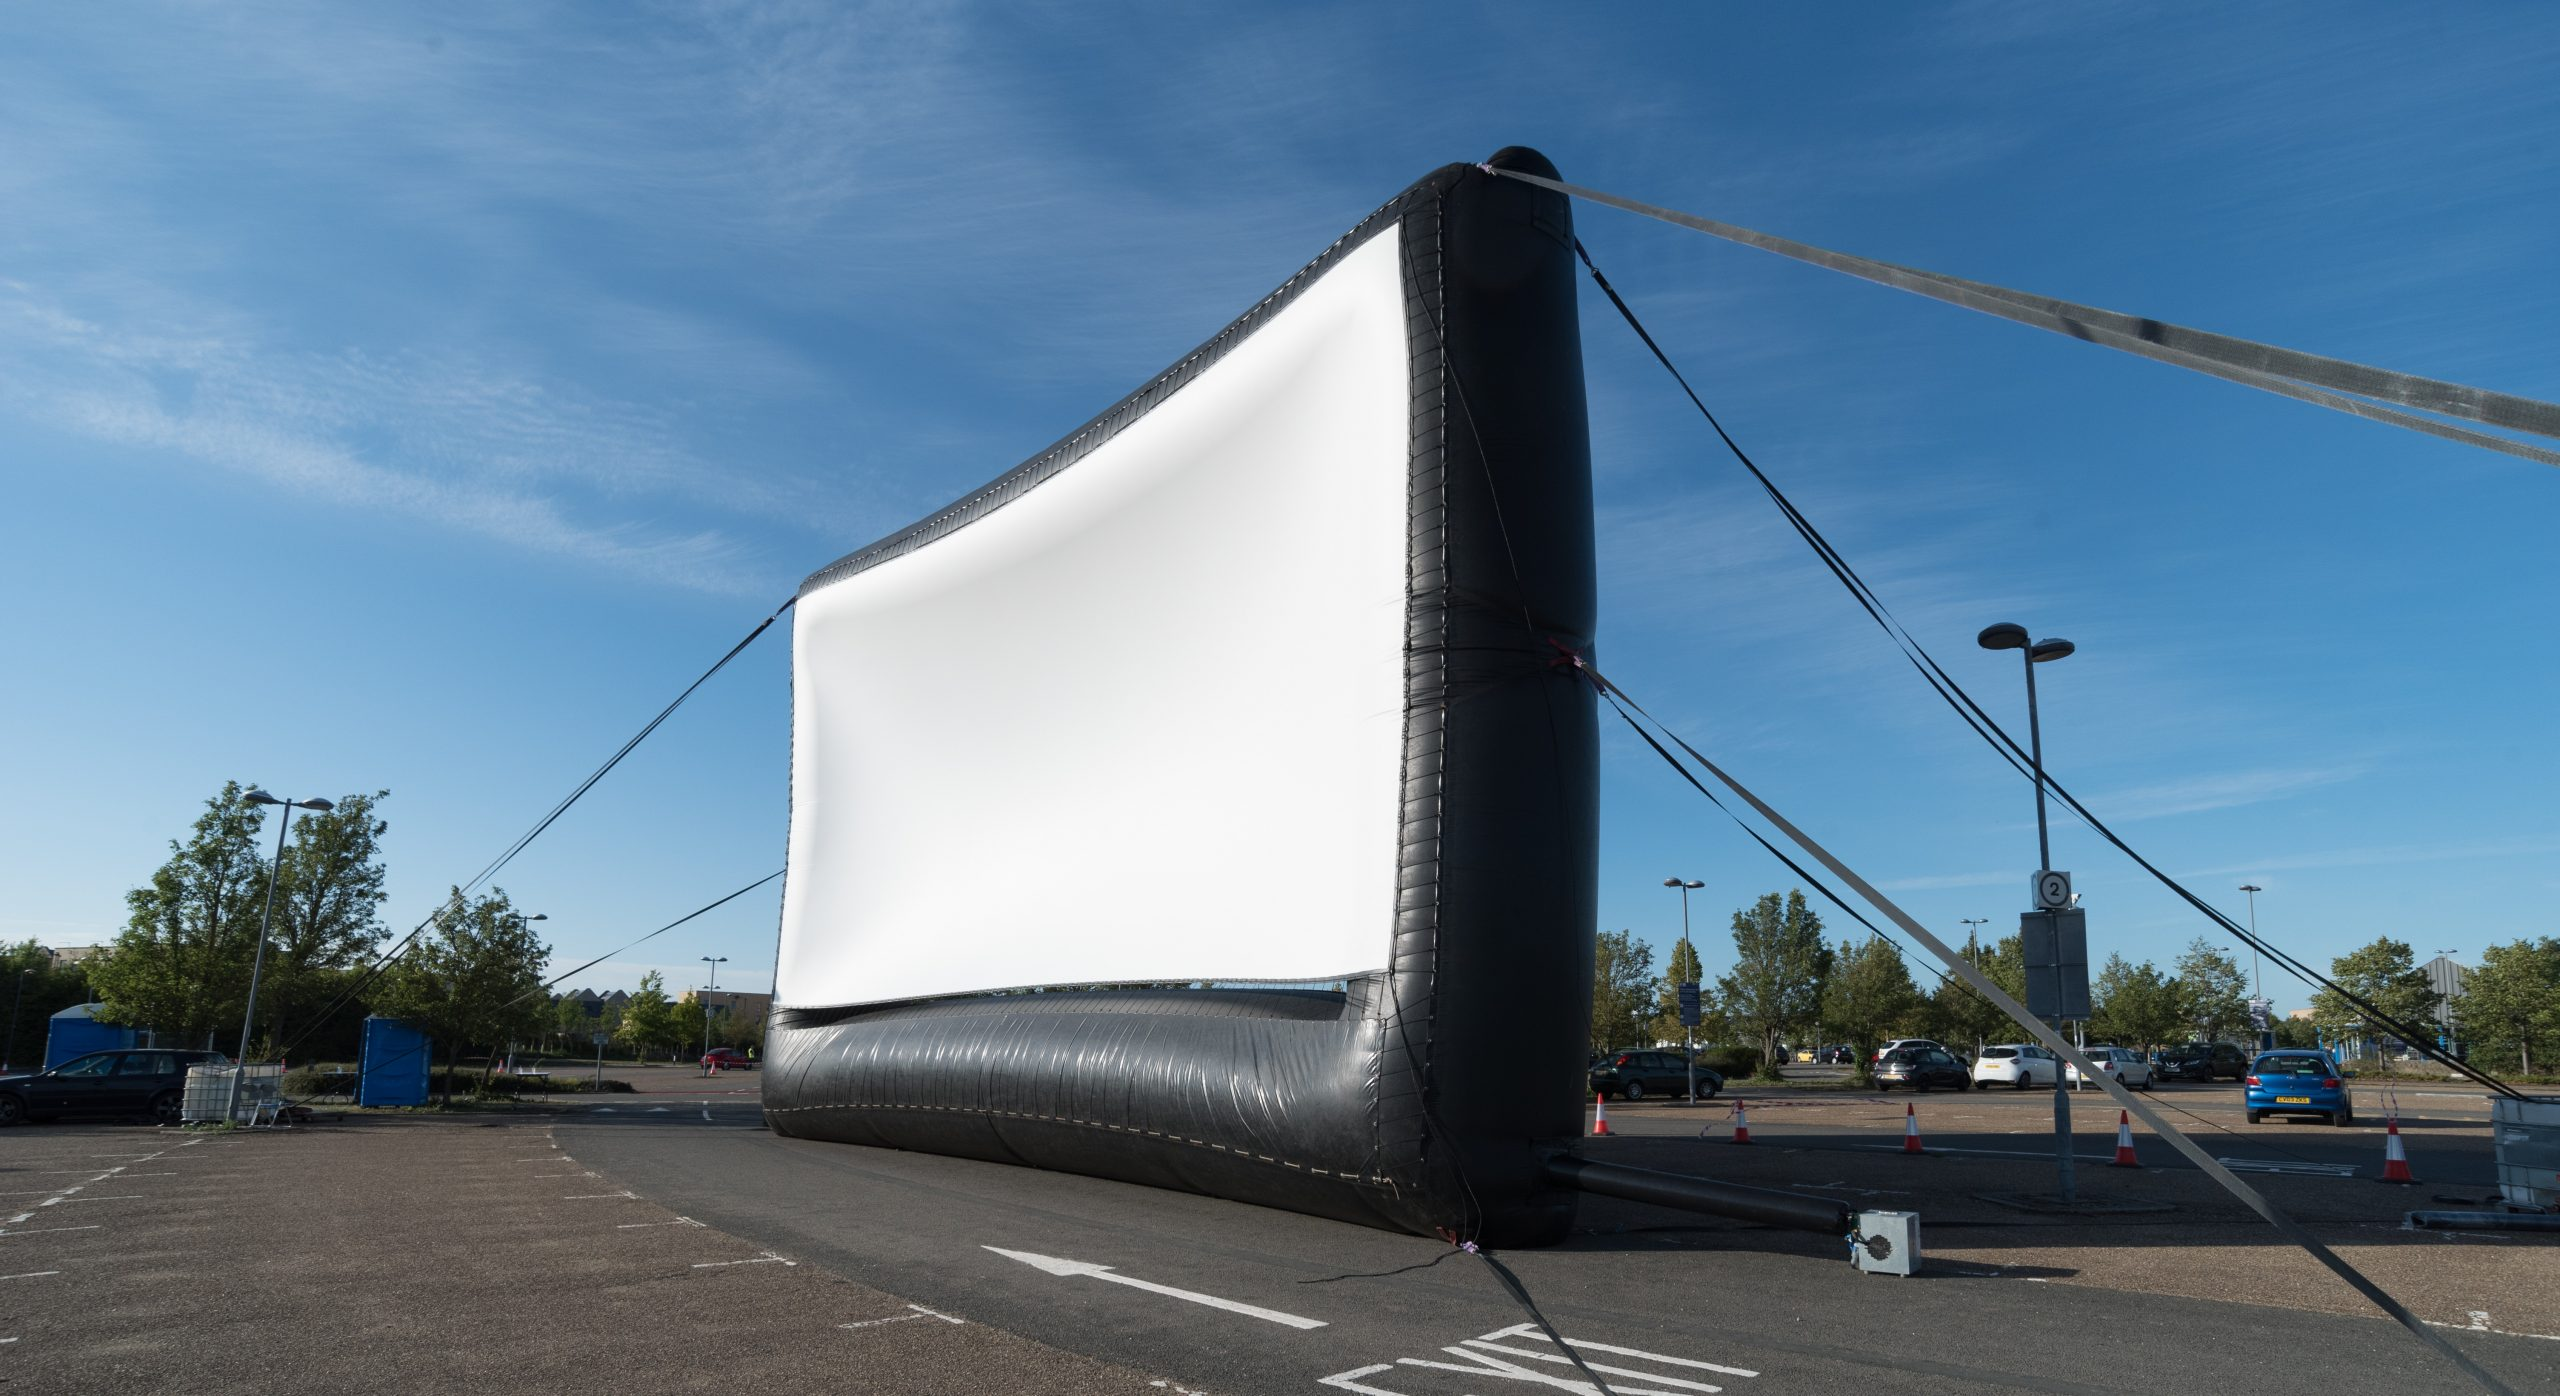 The UK's largest inflatable Airscreen!